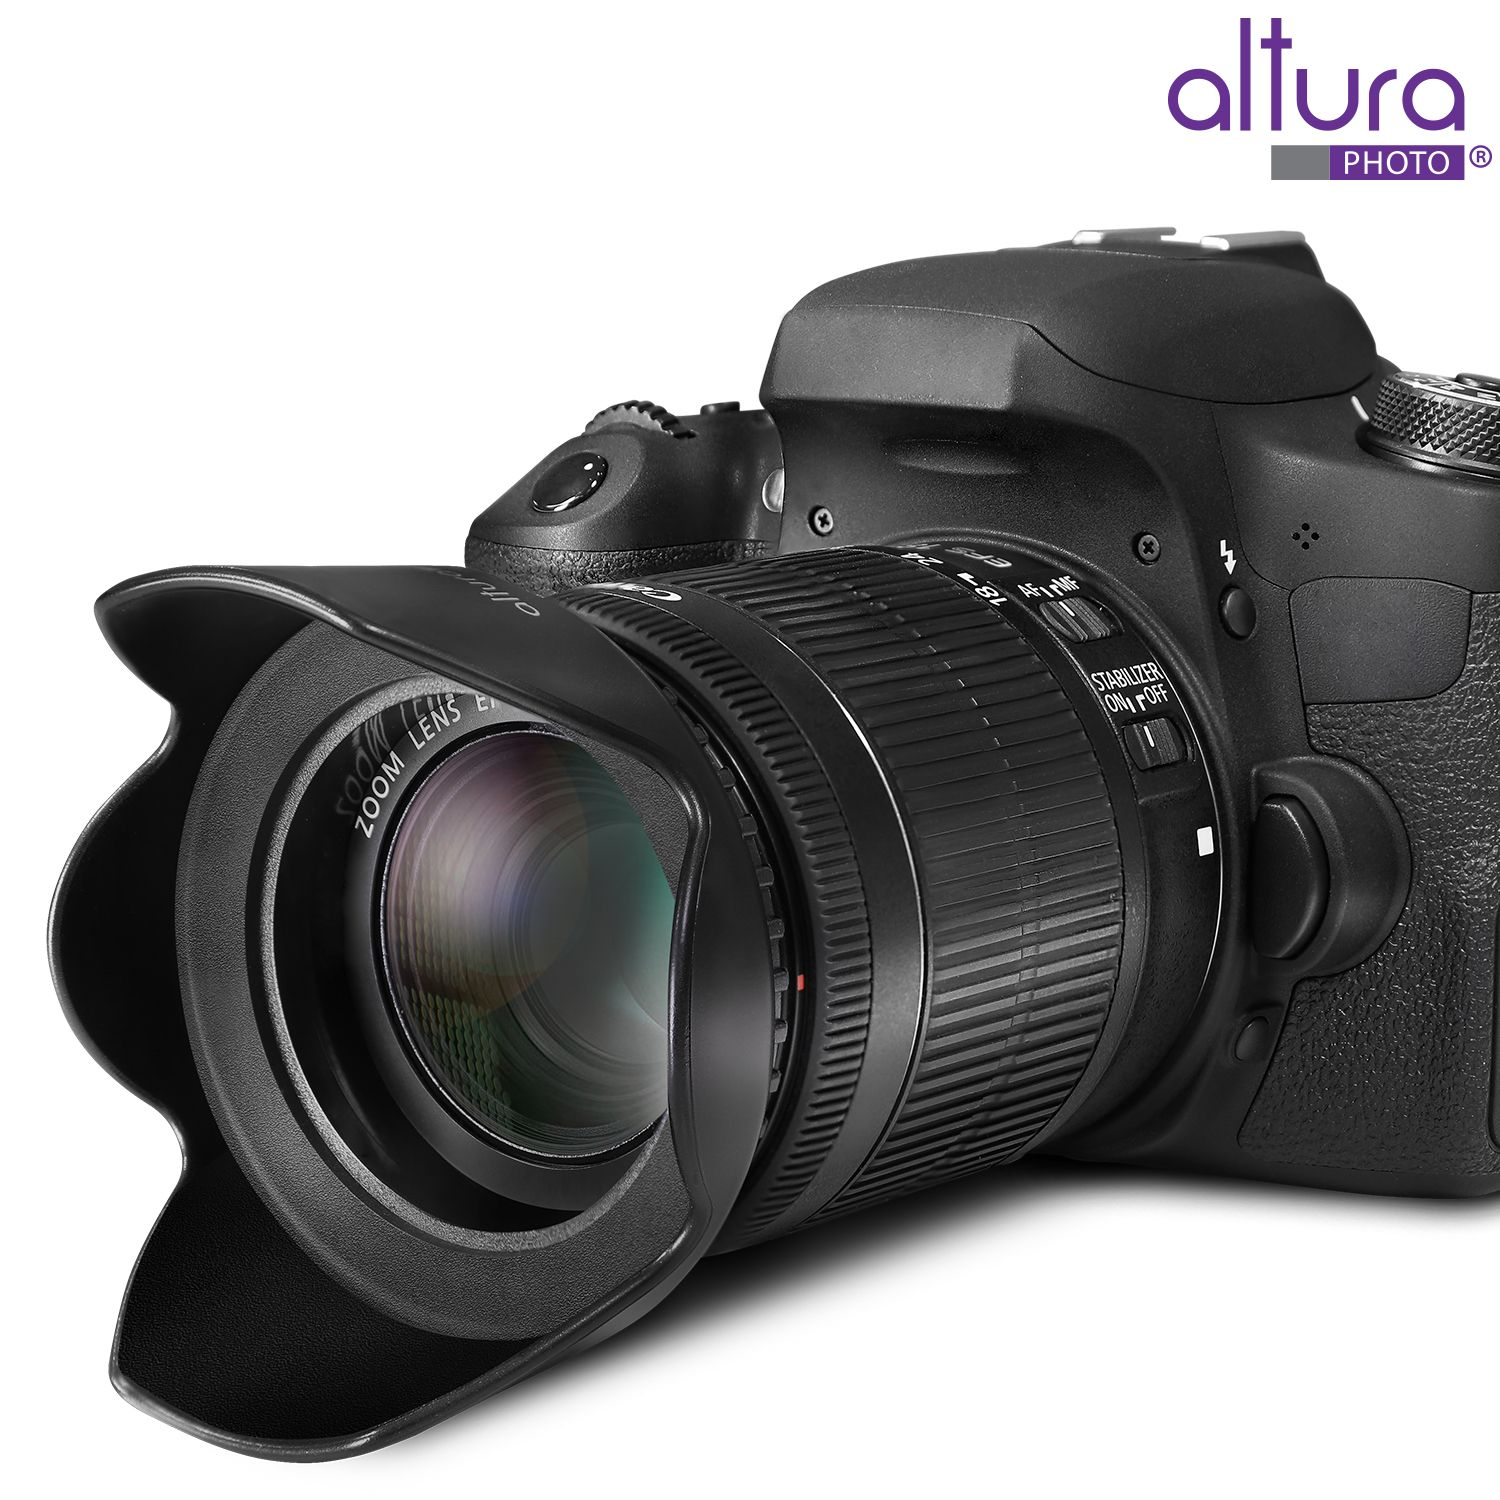 Winsome Skip To End Images Gallery Altura Flower Lens Hood T6i Vs T7i Image Quality T6i Vs T7i Review dpreview T6i Vs T7i